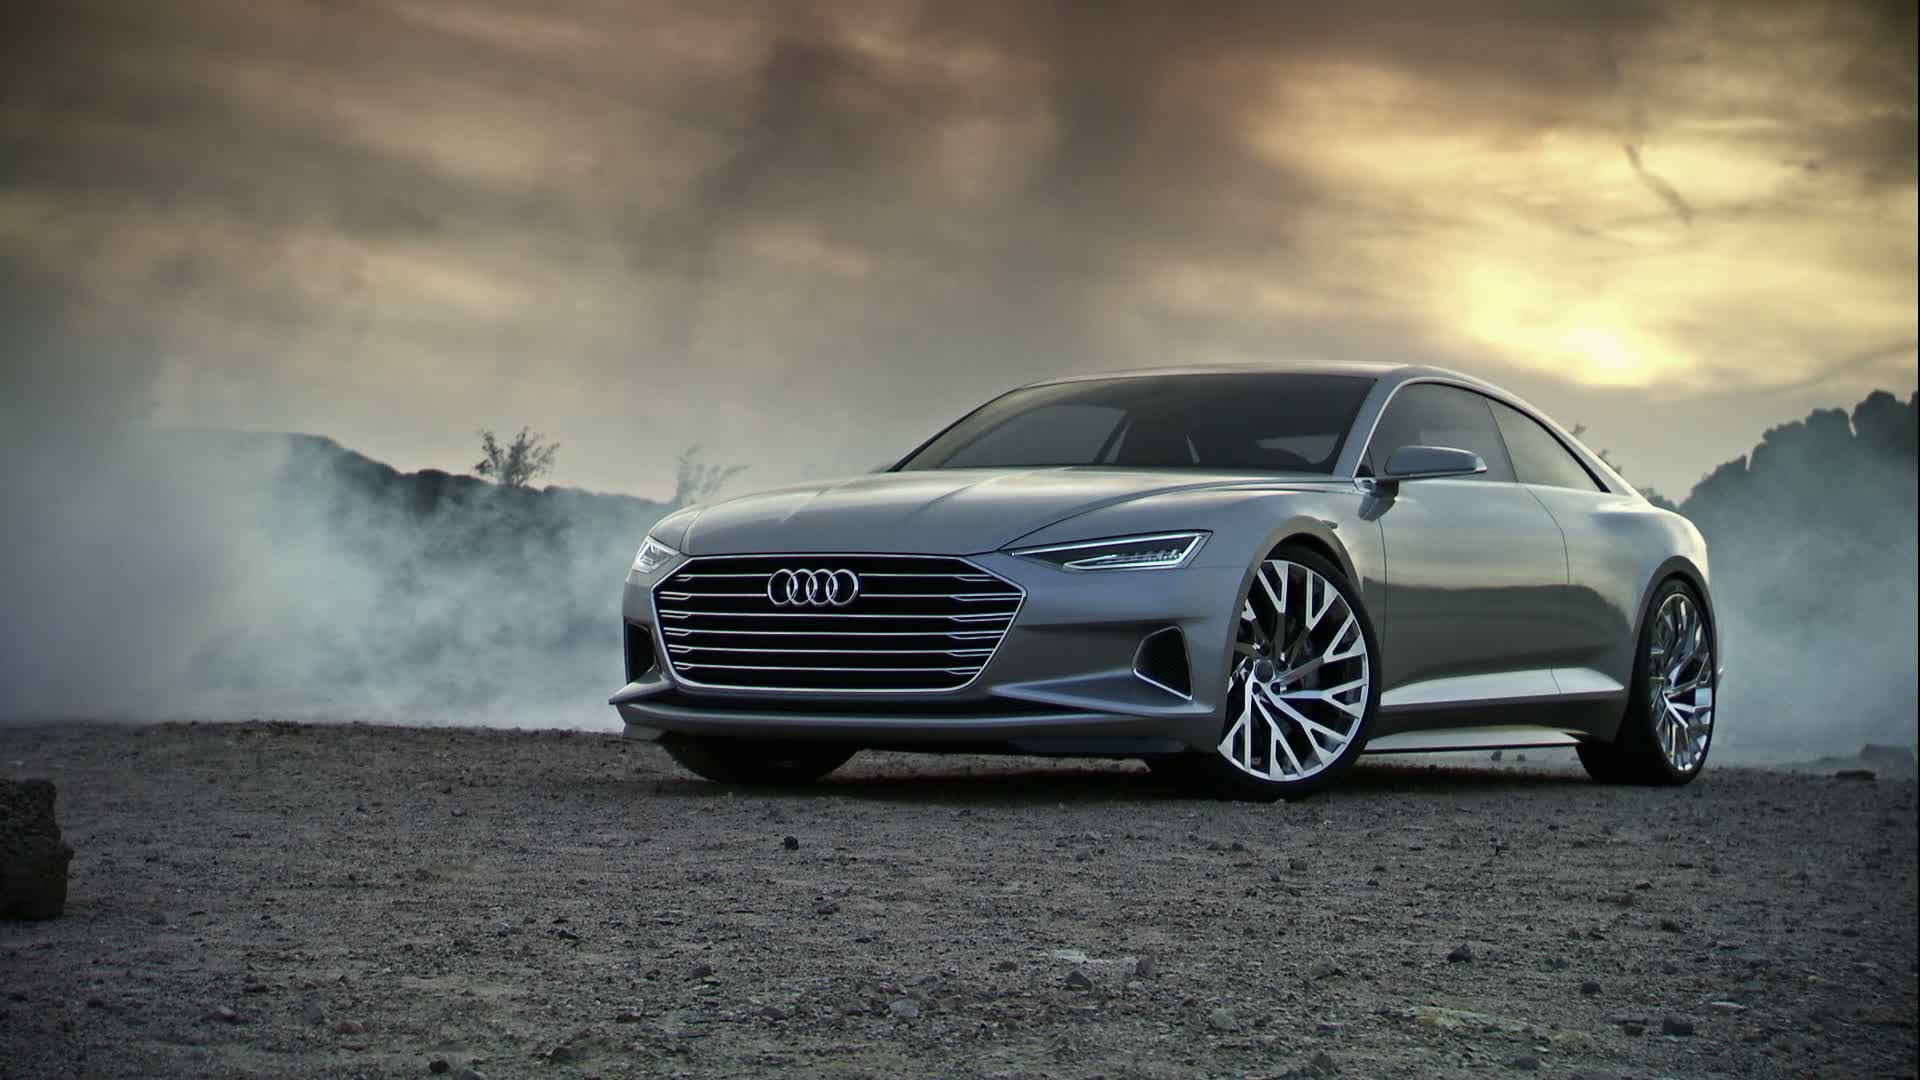 The Audi prologue show car – launching into a new design era